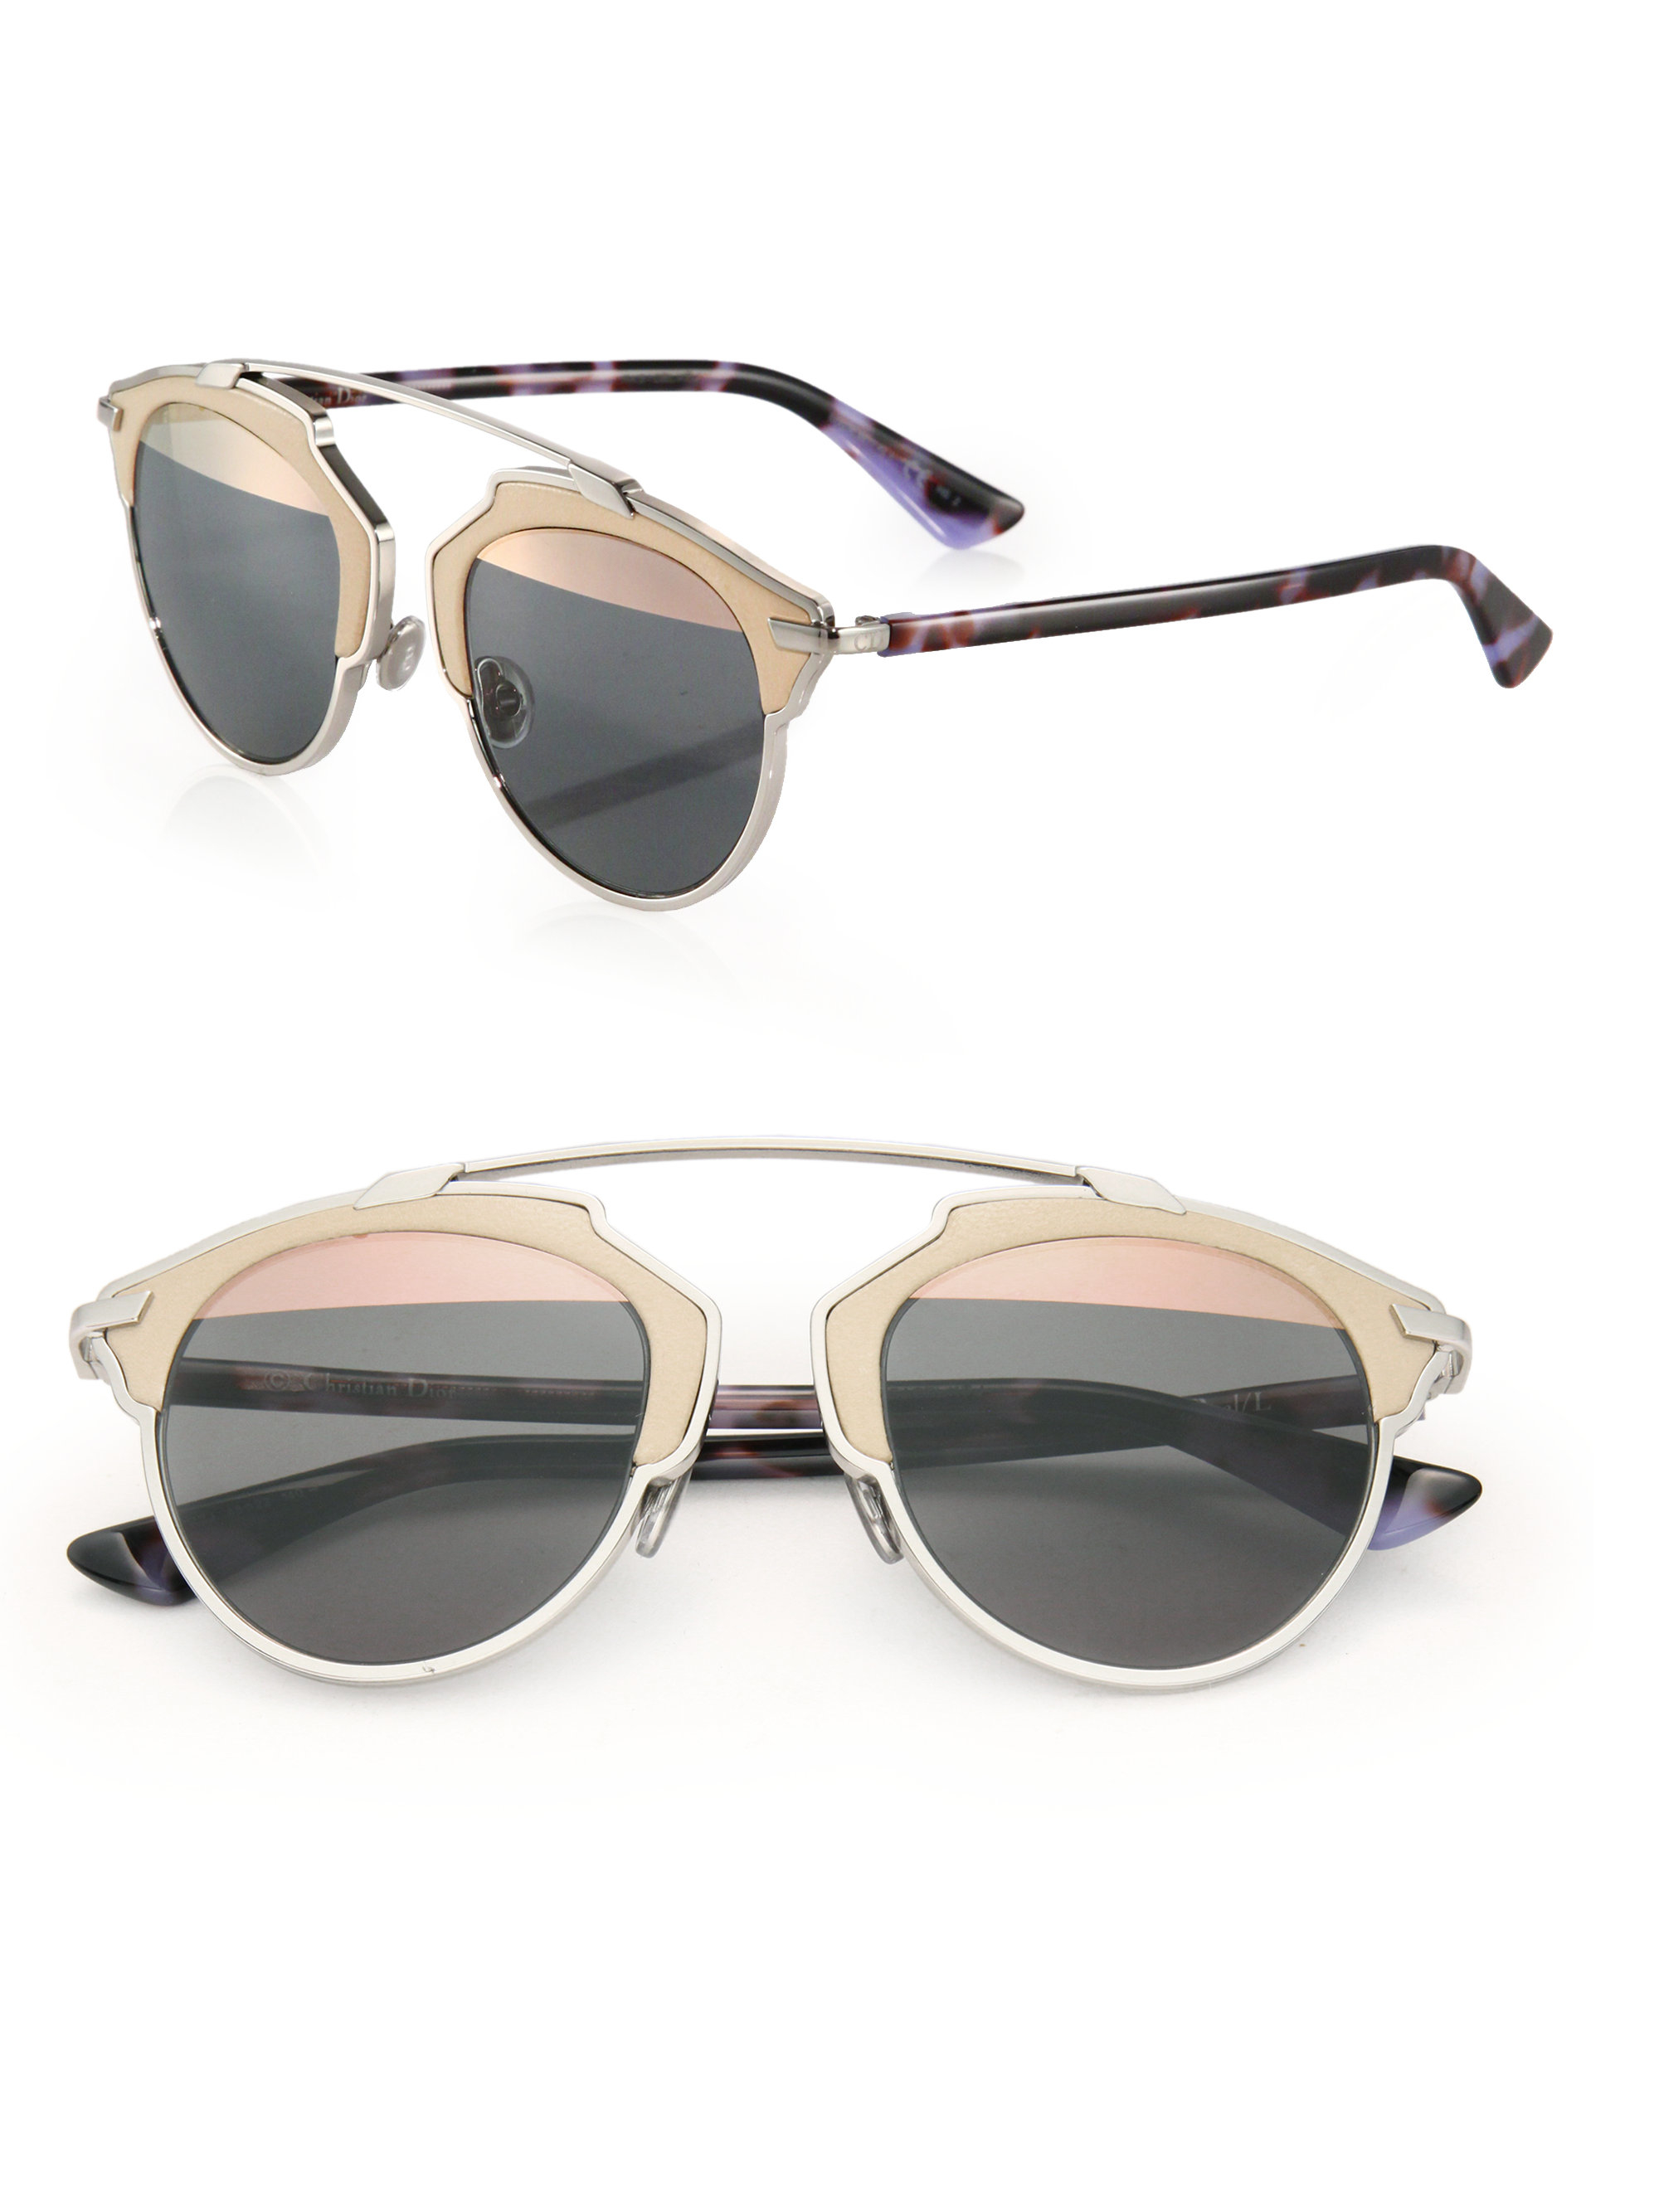 Glasses Metal Frame Dior : Dior So Real 48mm Leather-trim Metal Sunglasses in Pink Lyst